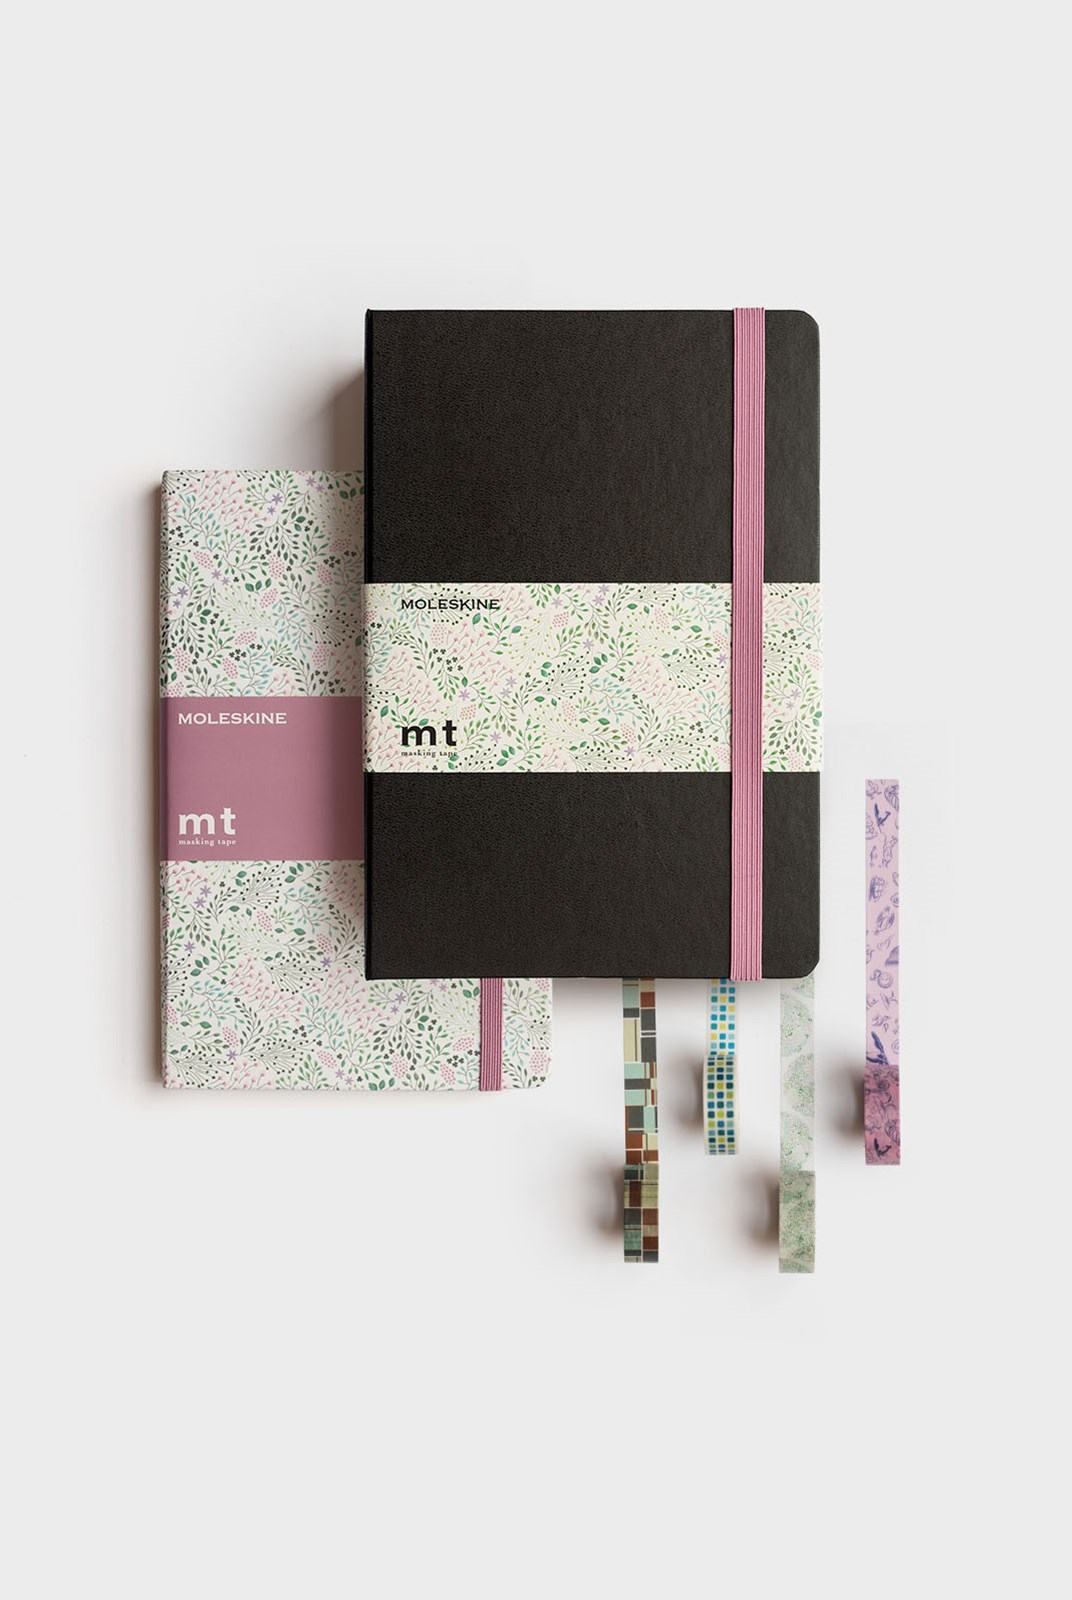 Moleskine - Limited Edition MT Tape Gift Box